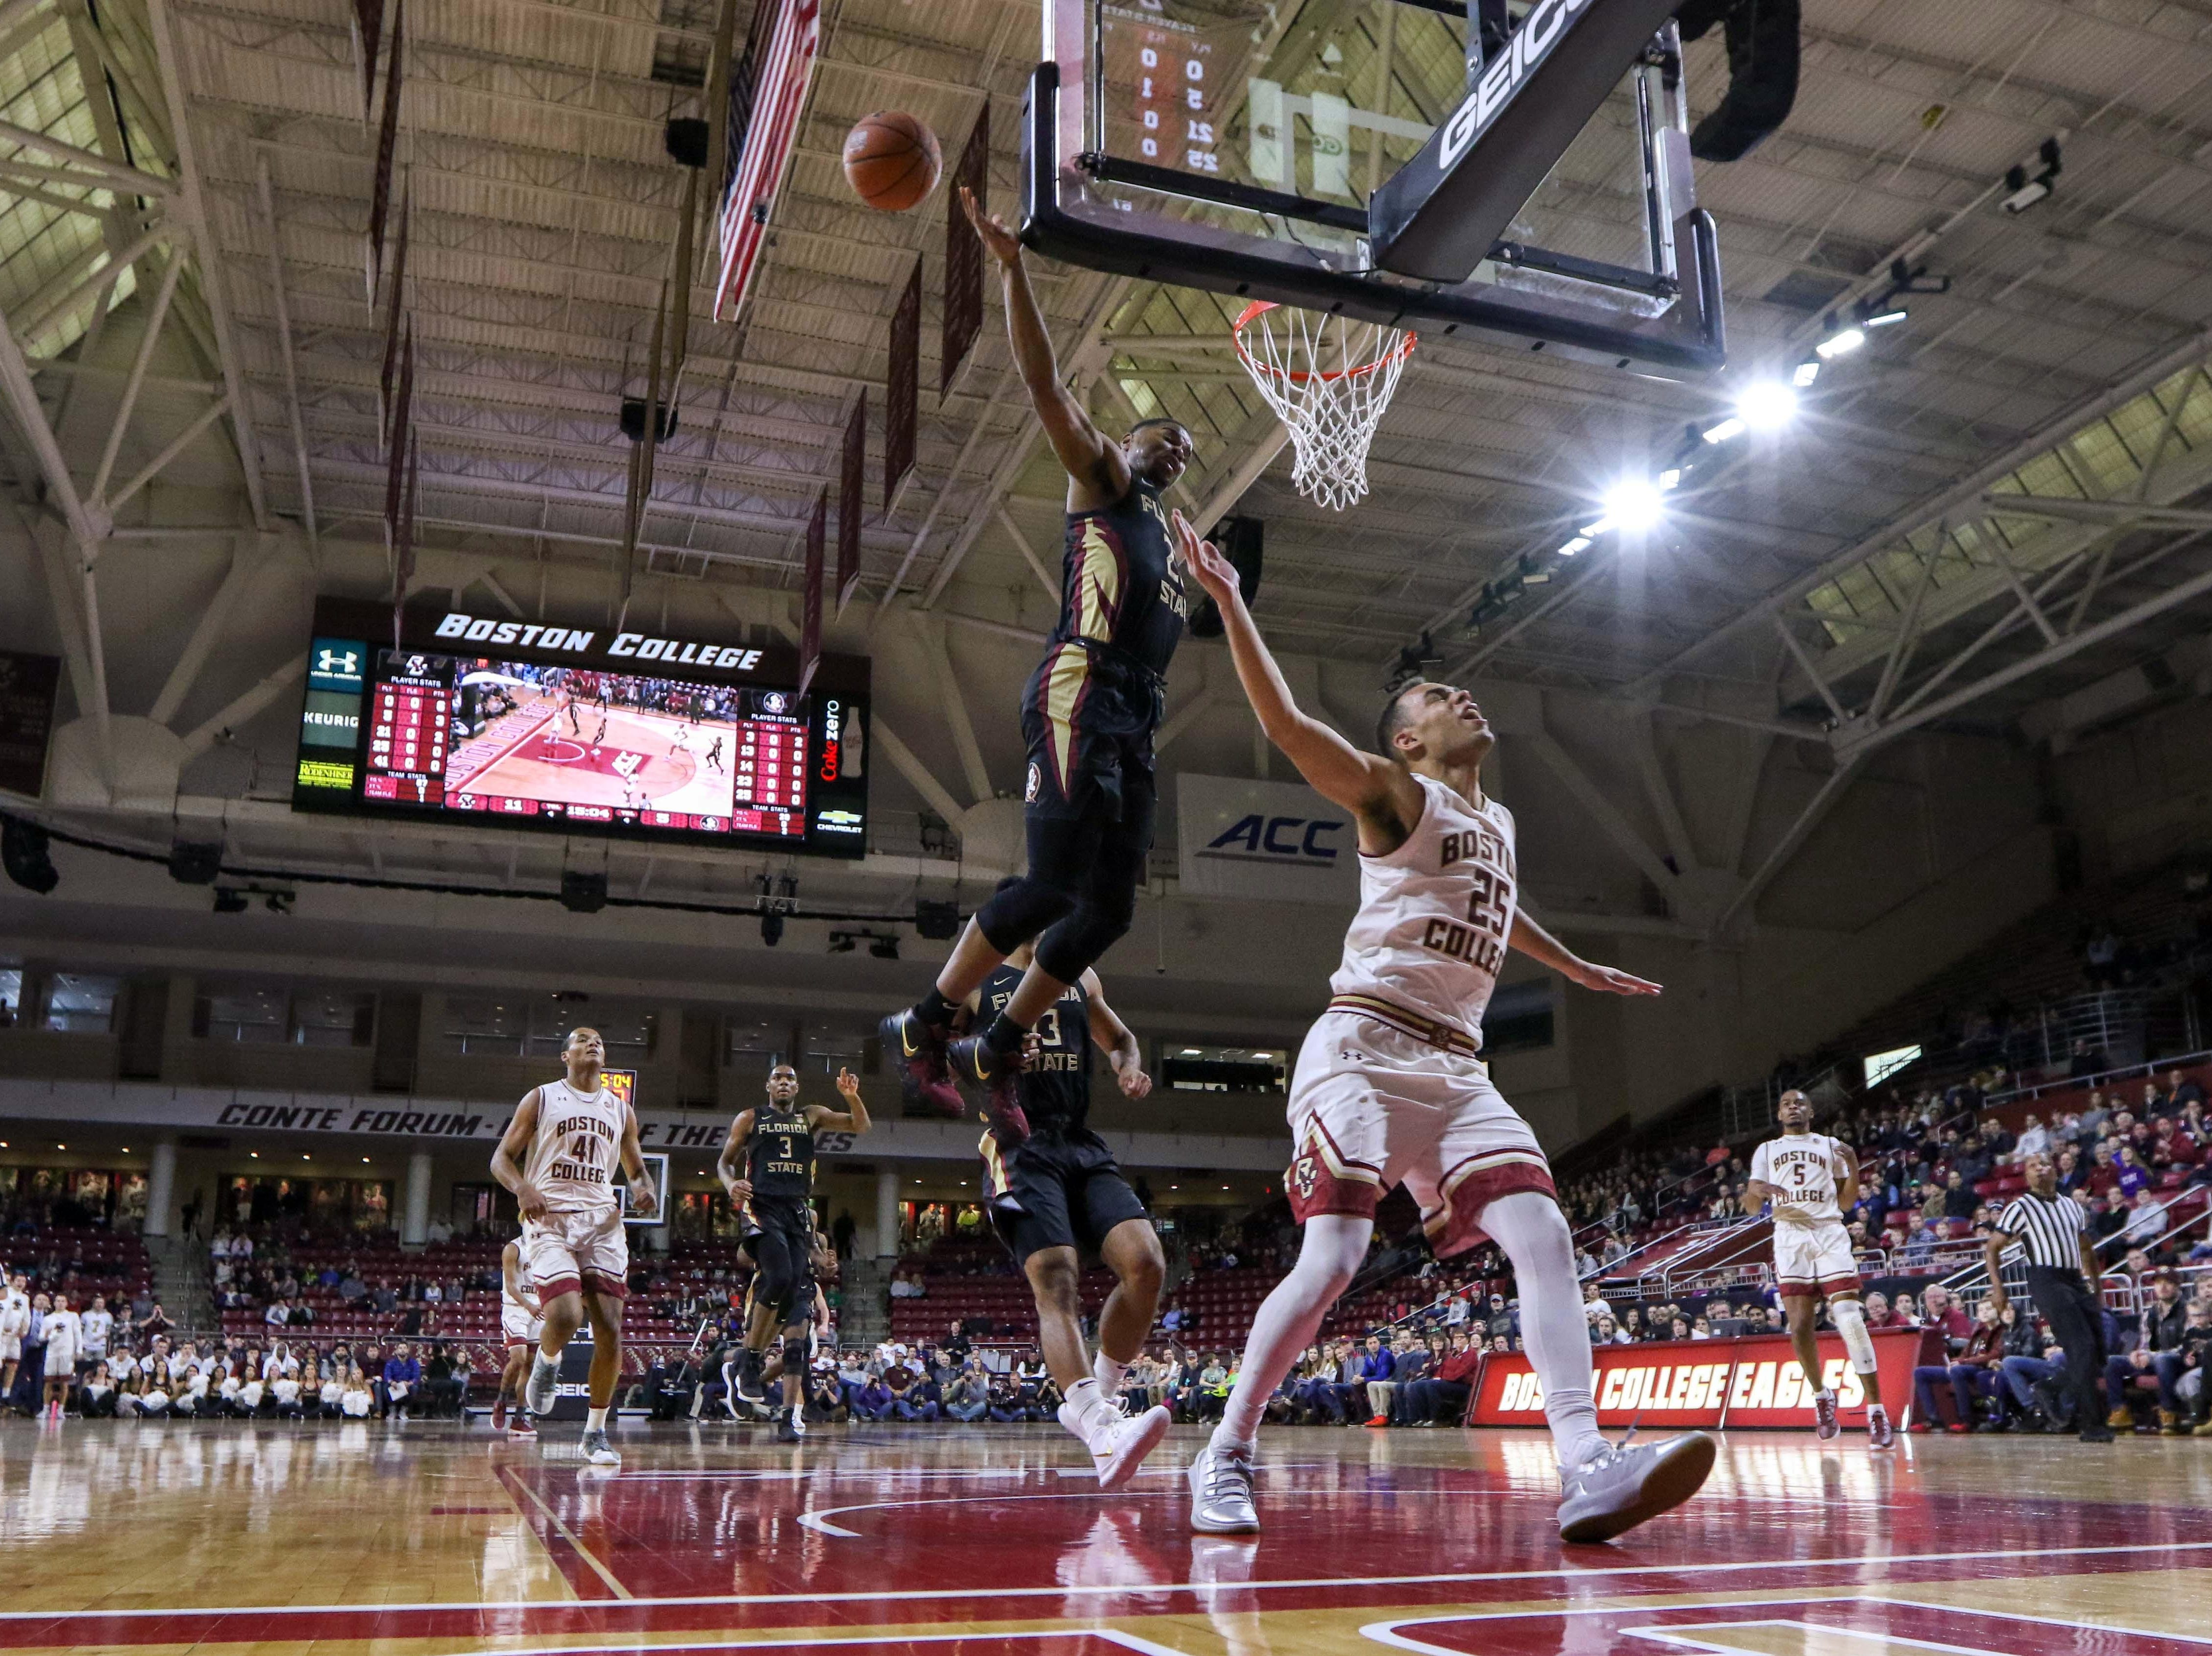 Jan 20, 2019; Chestnut Hill, MA, USA; Florida State Seminoles guard M.J. Walker (23) blocks a shot attempt by Boston College Eagles guard Jordan Chatman (25) during the first half at Conte Forum. Mandatory Credit: Paul Rutherford-USA TODAY Sports